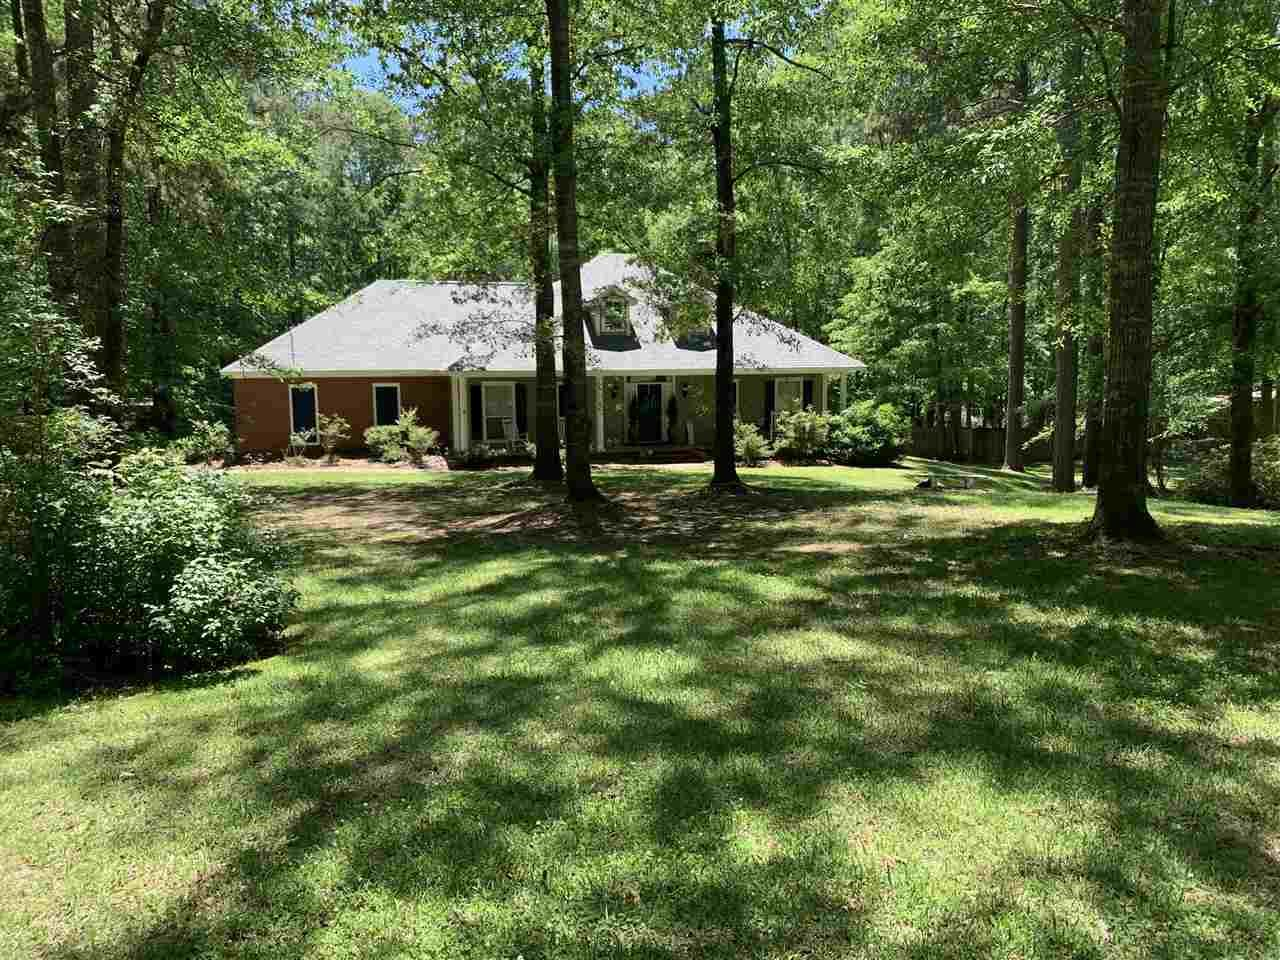 125 PINEDALE RD, Terry, MS 39170 - MLS#: 340384